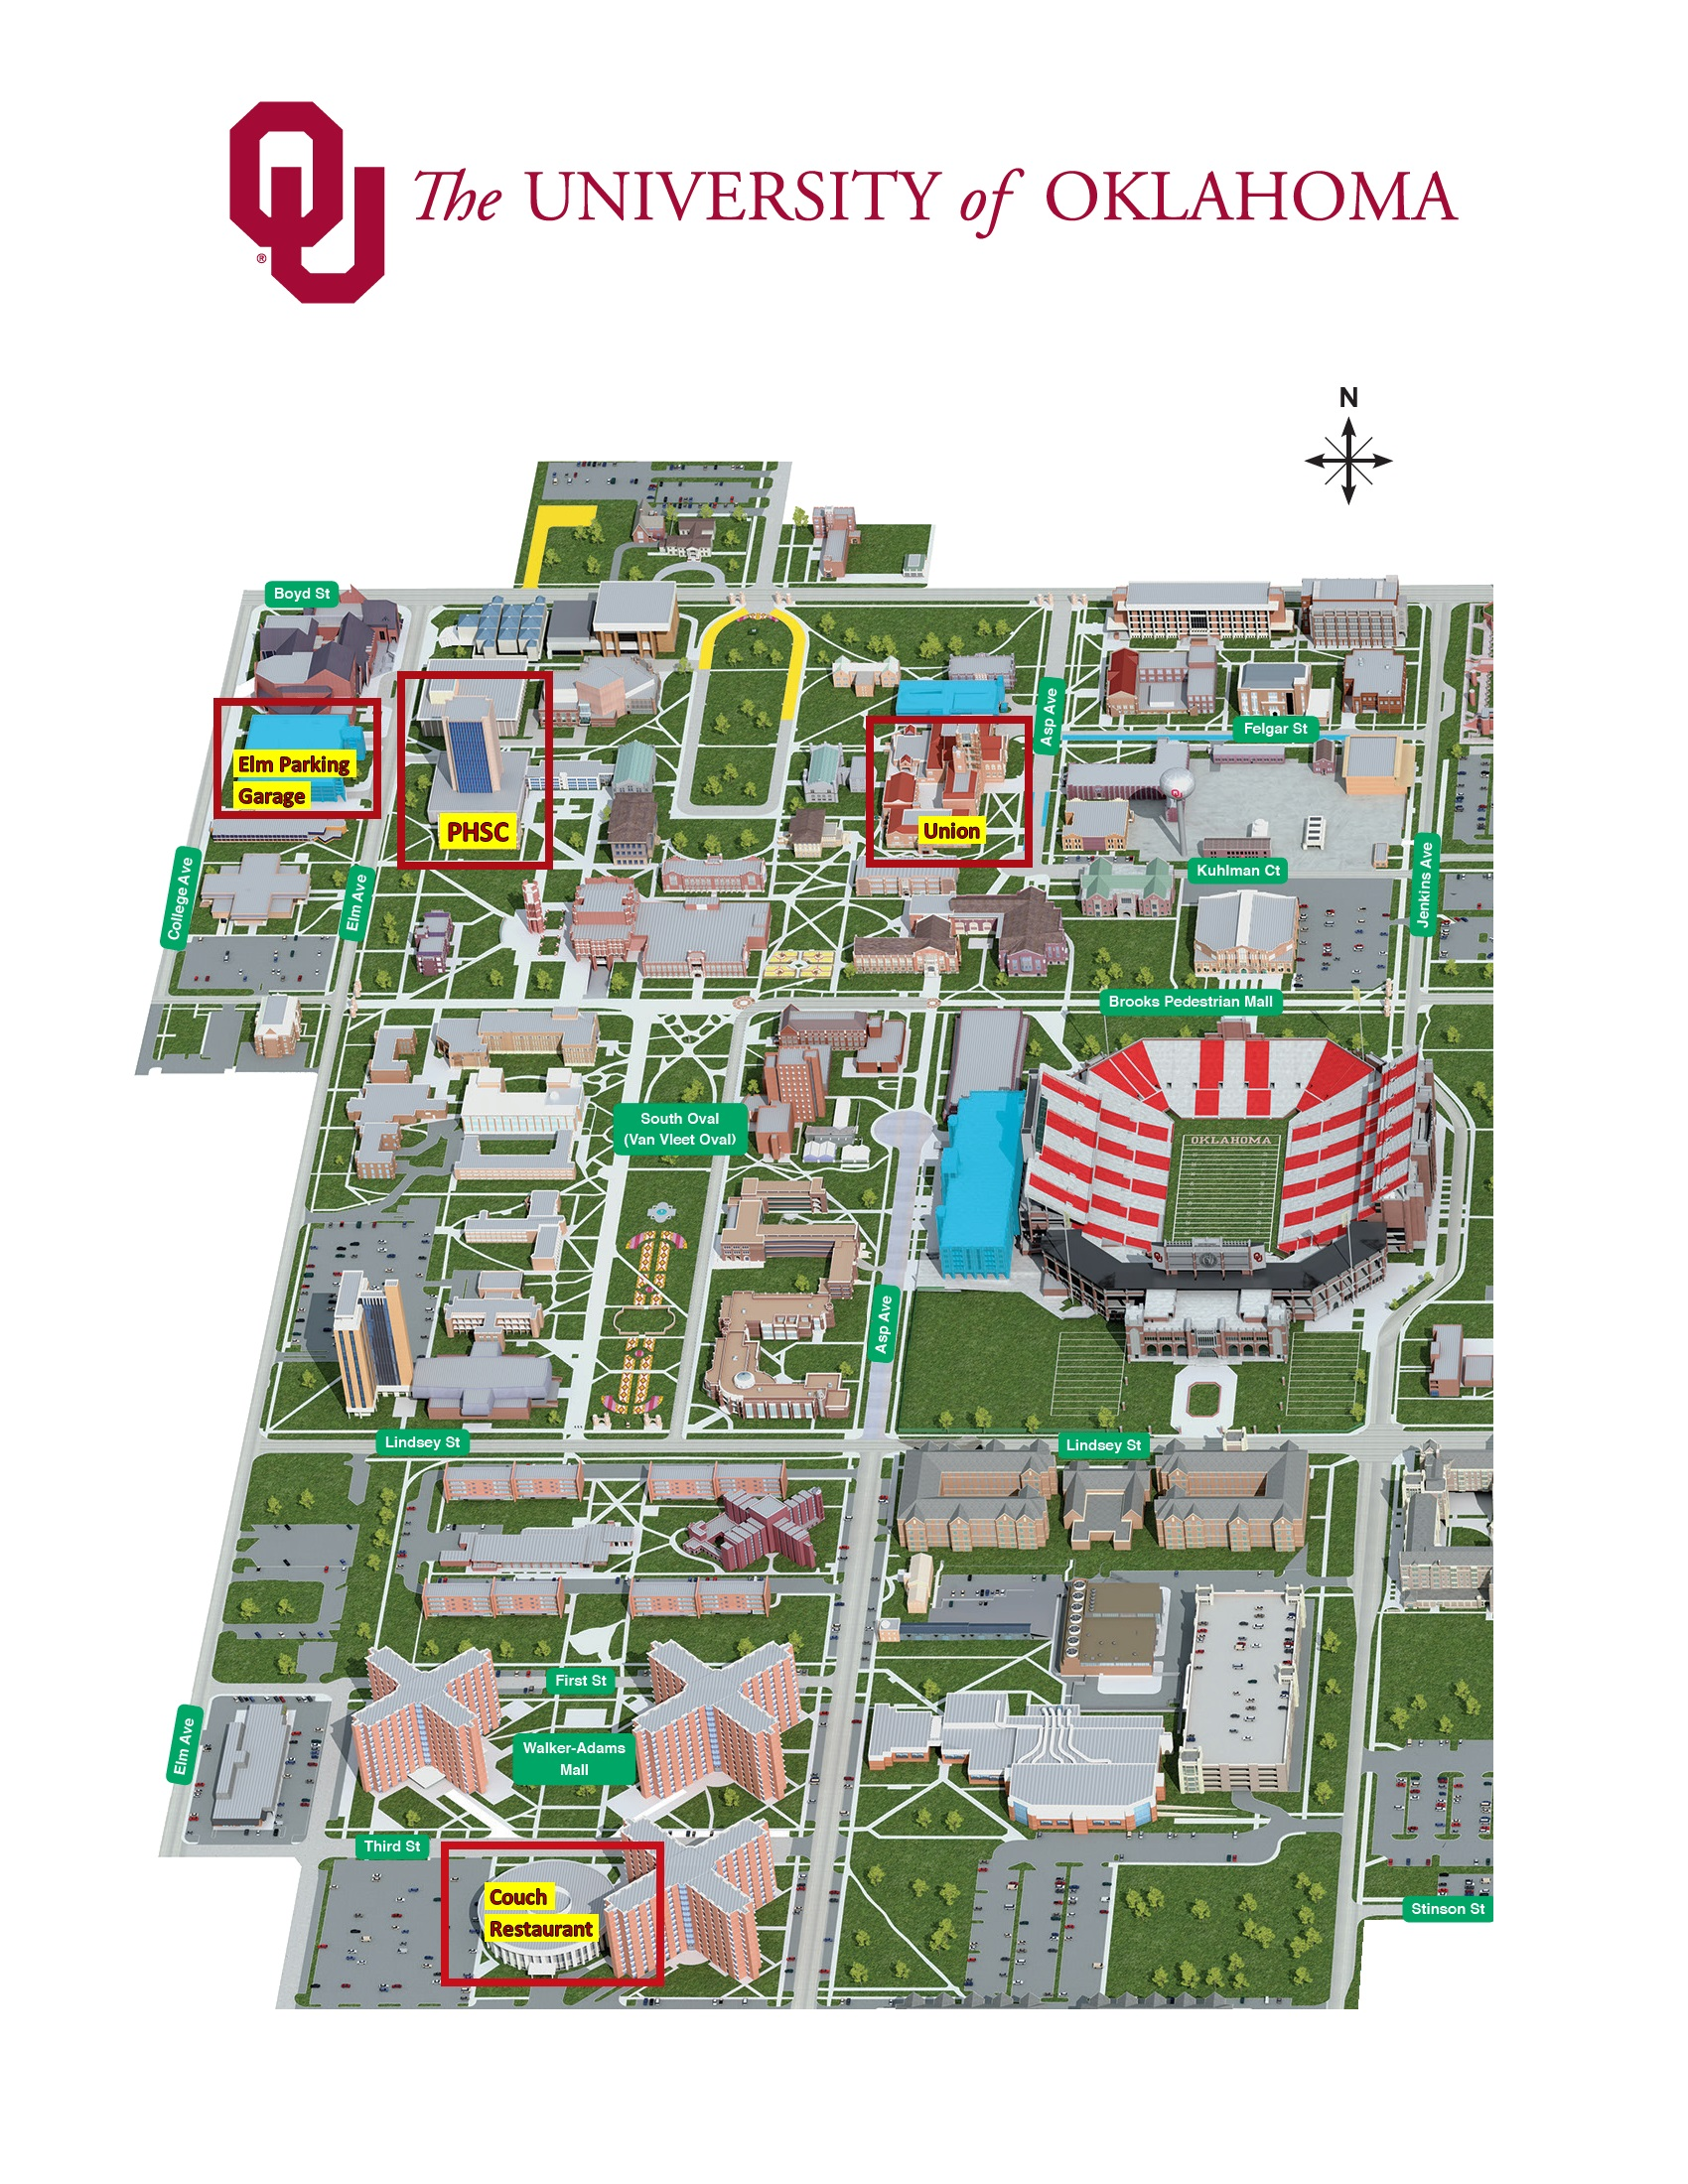 Ou Campus Map SIAM Central States Section   University of Oklahoma Ou Campus Map